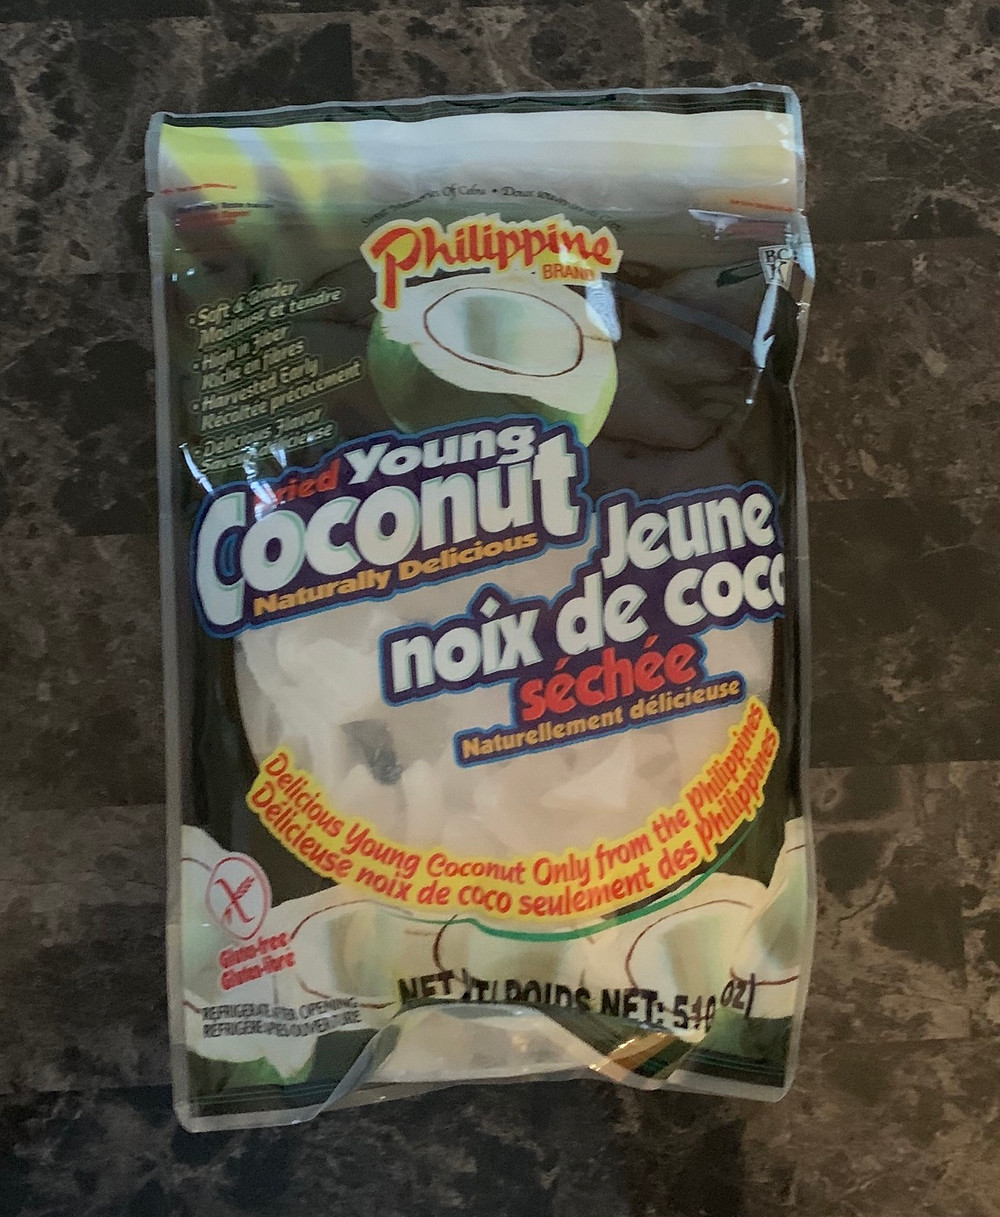 Costco Philippine Brand Young Dried Young Coconut